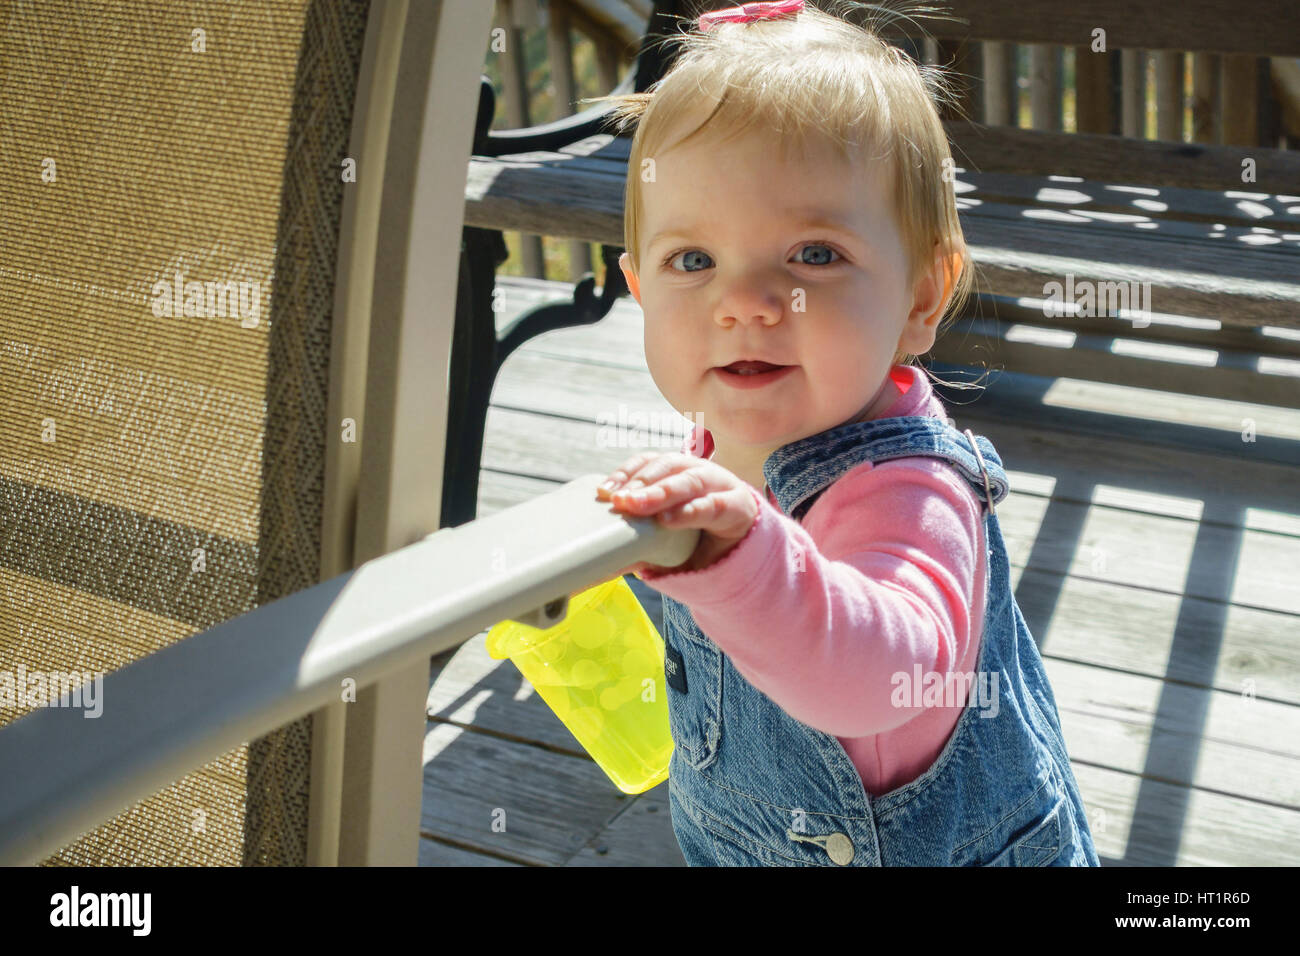 One year old smiling Caucasian baby girl in overalls with a drink cup, standing on an outdoor deck with sunshine. - Stock Image